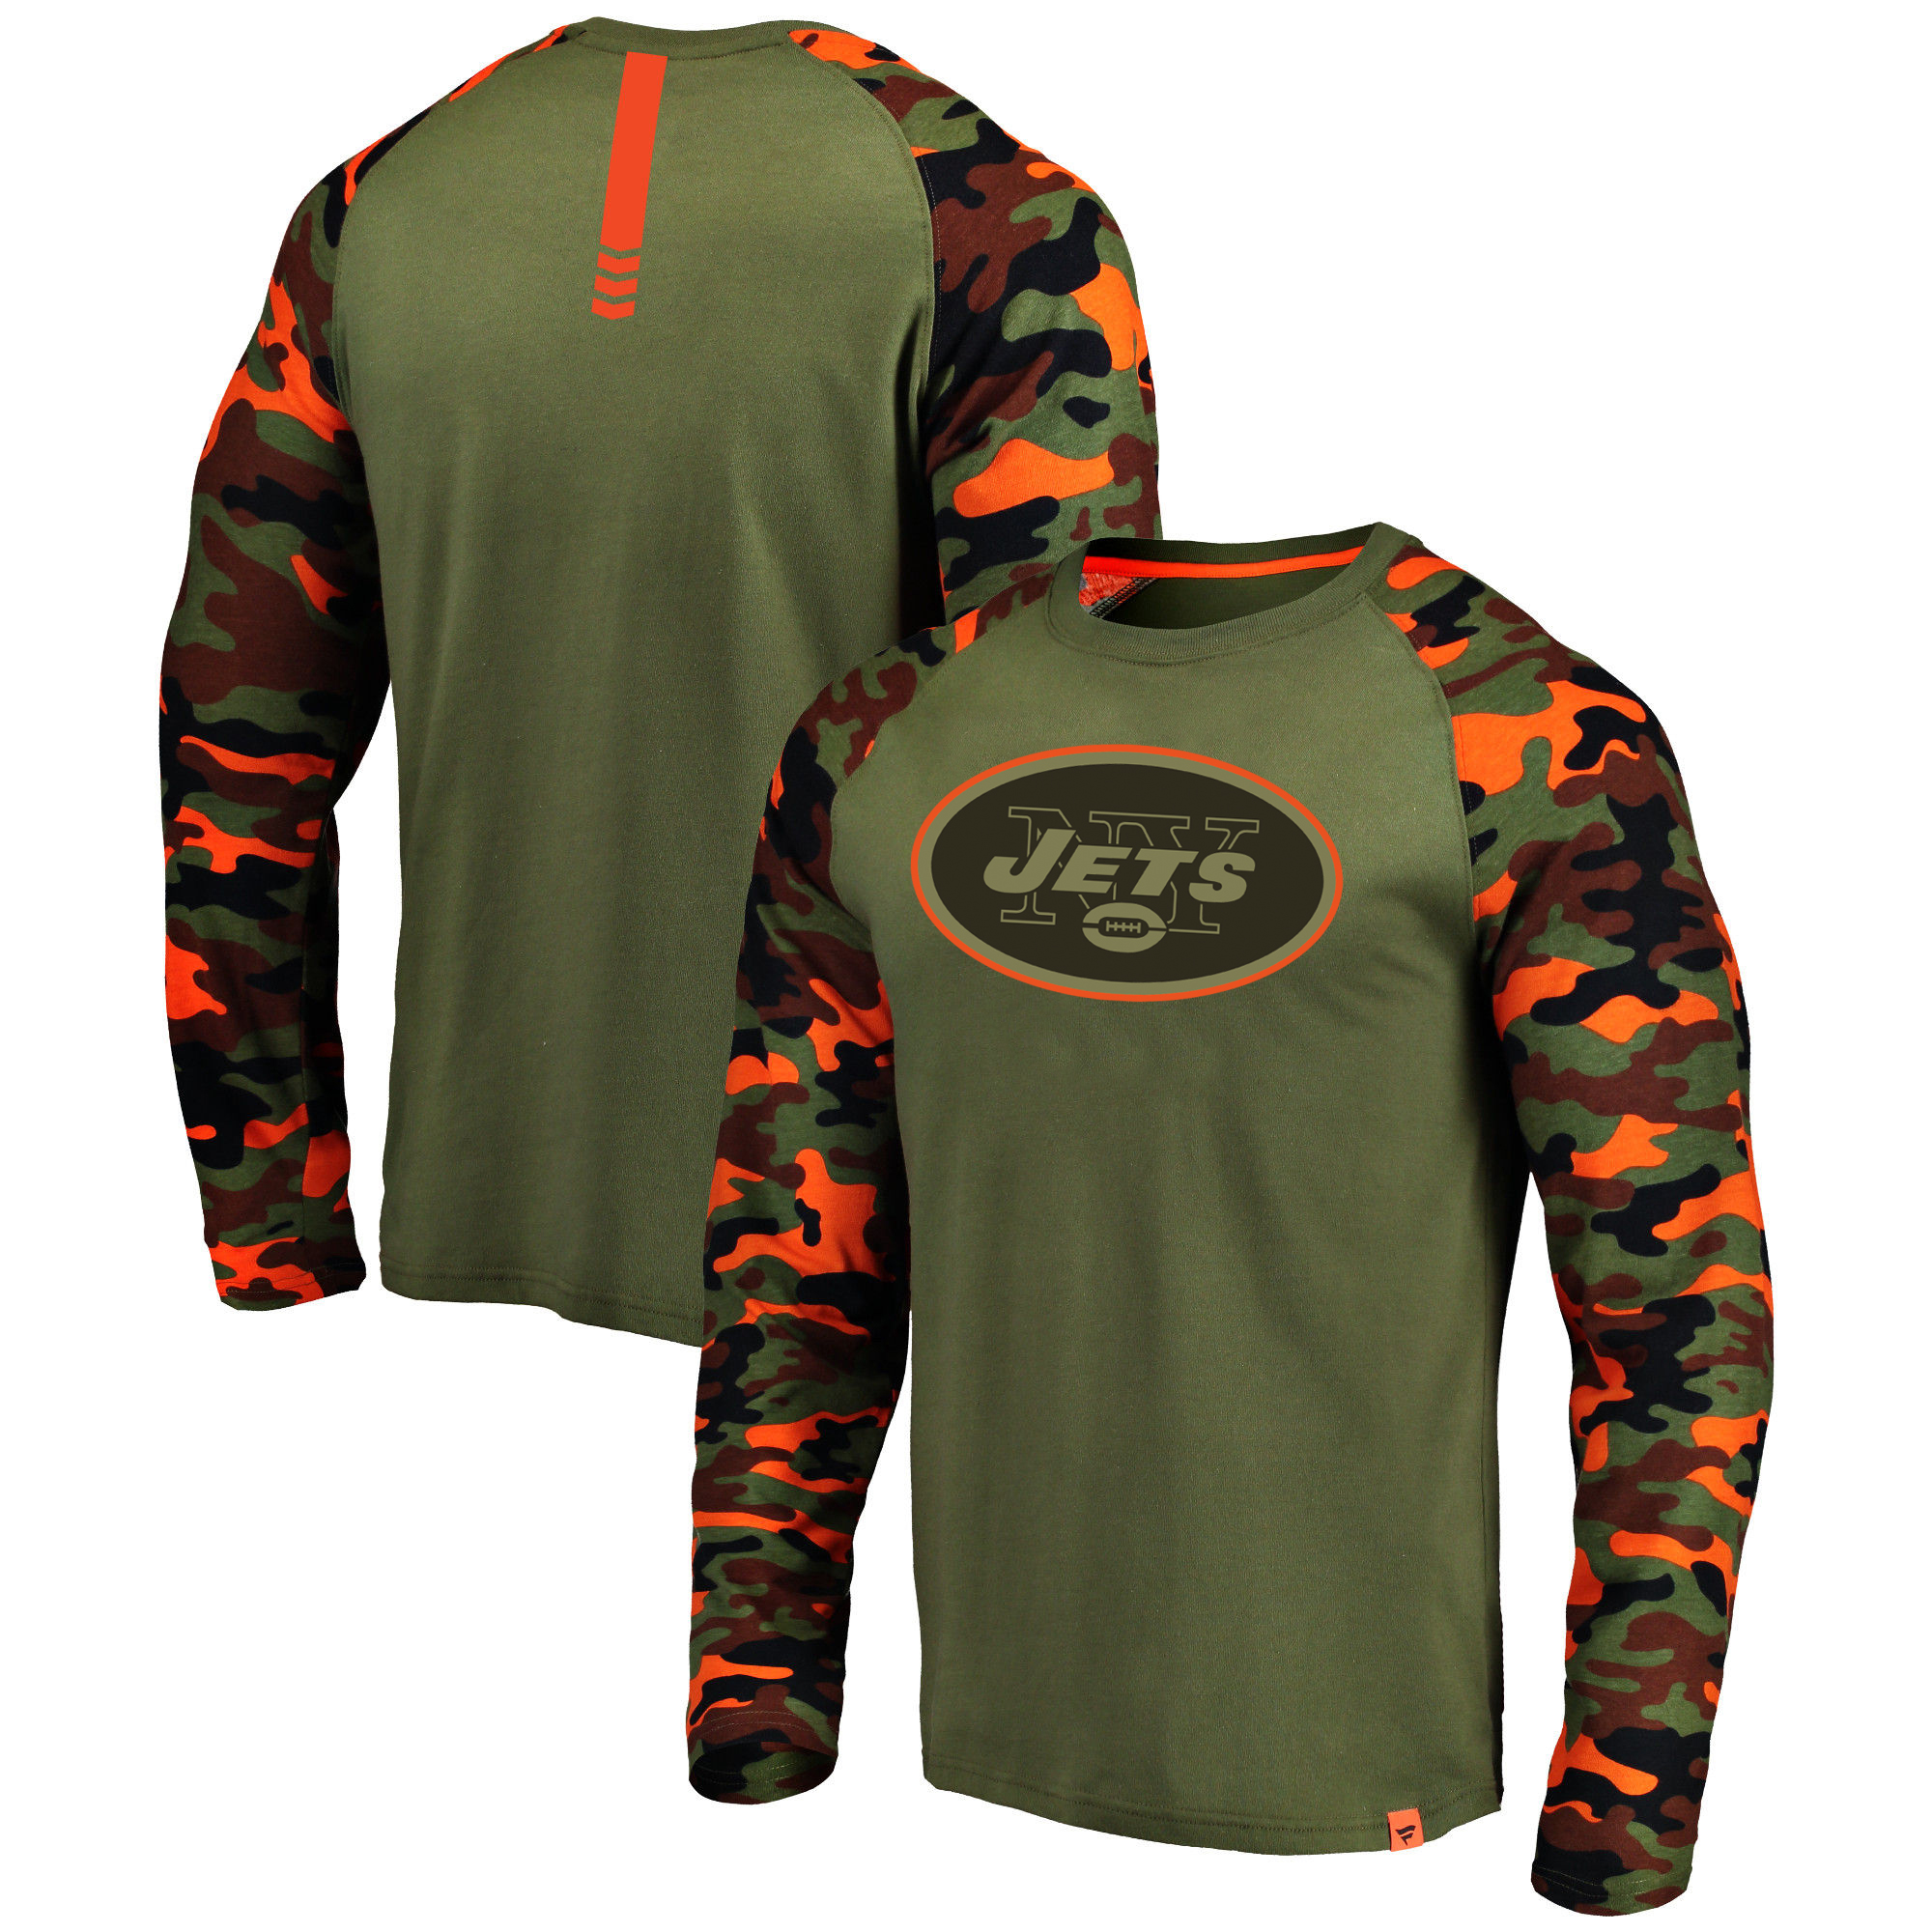 New York Jets Heathered Gray Camo NFL Pro Line by Fanatics Branded Long Sleeve T-Shirt